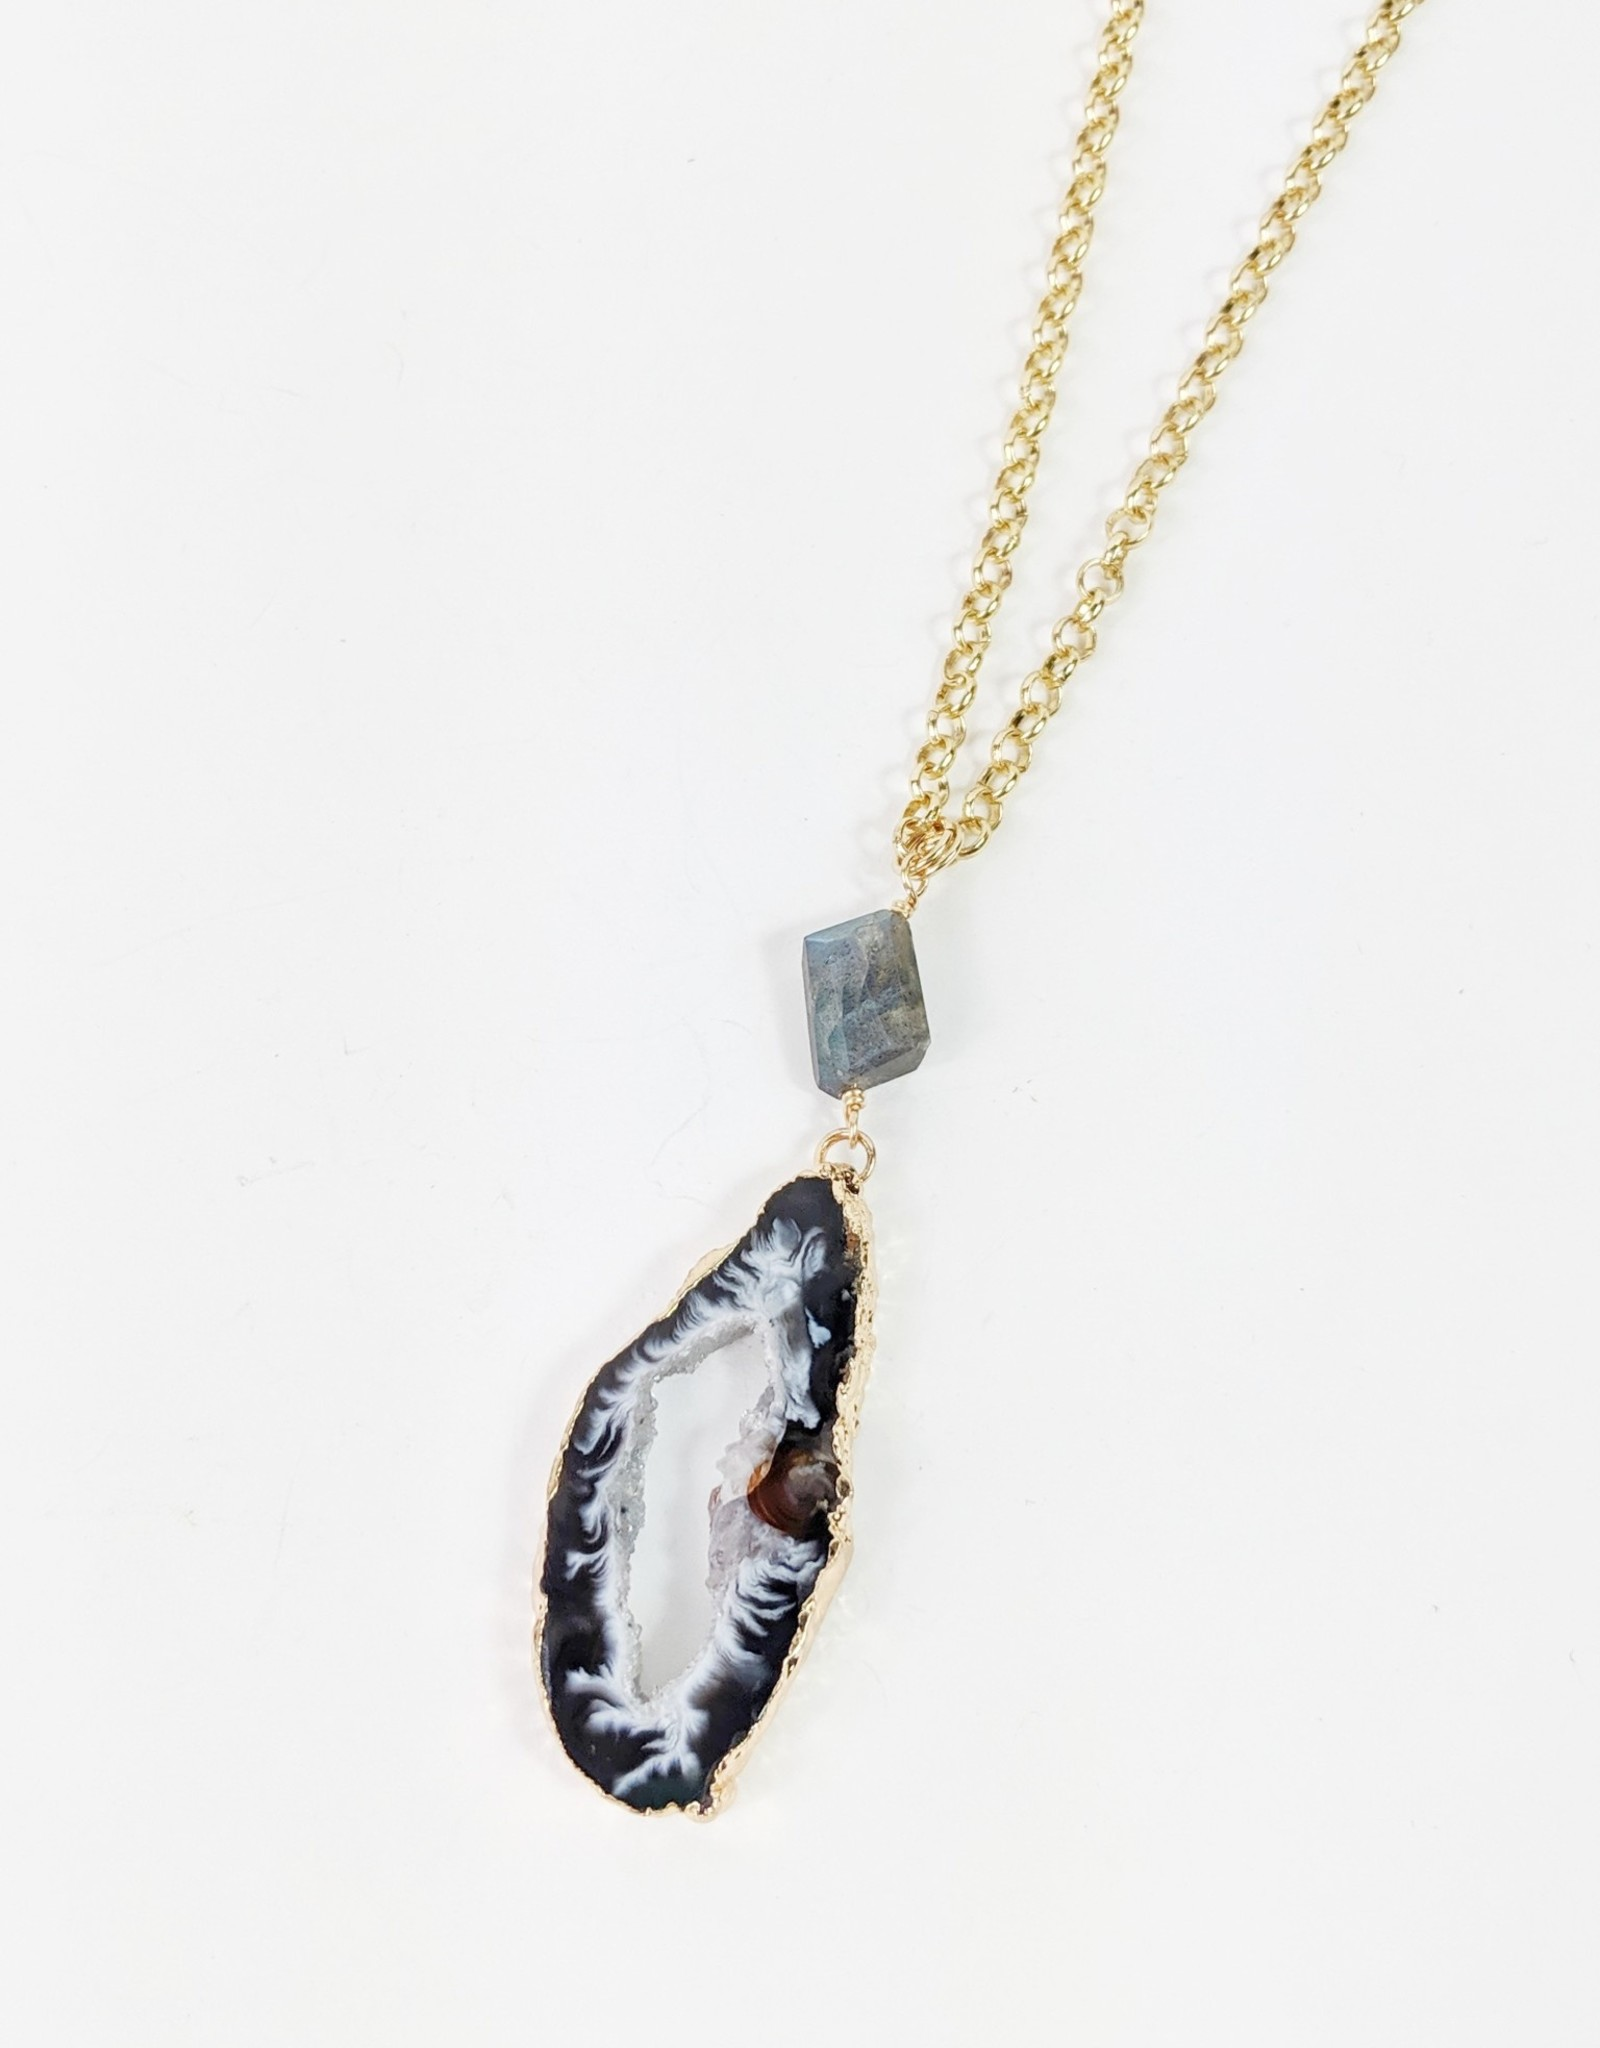 Lotus Jewelry Coachella Agate Geode Necklace